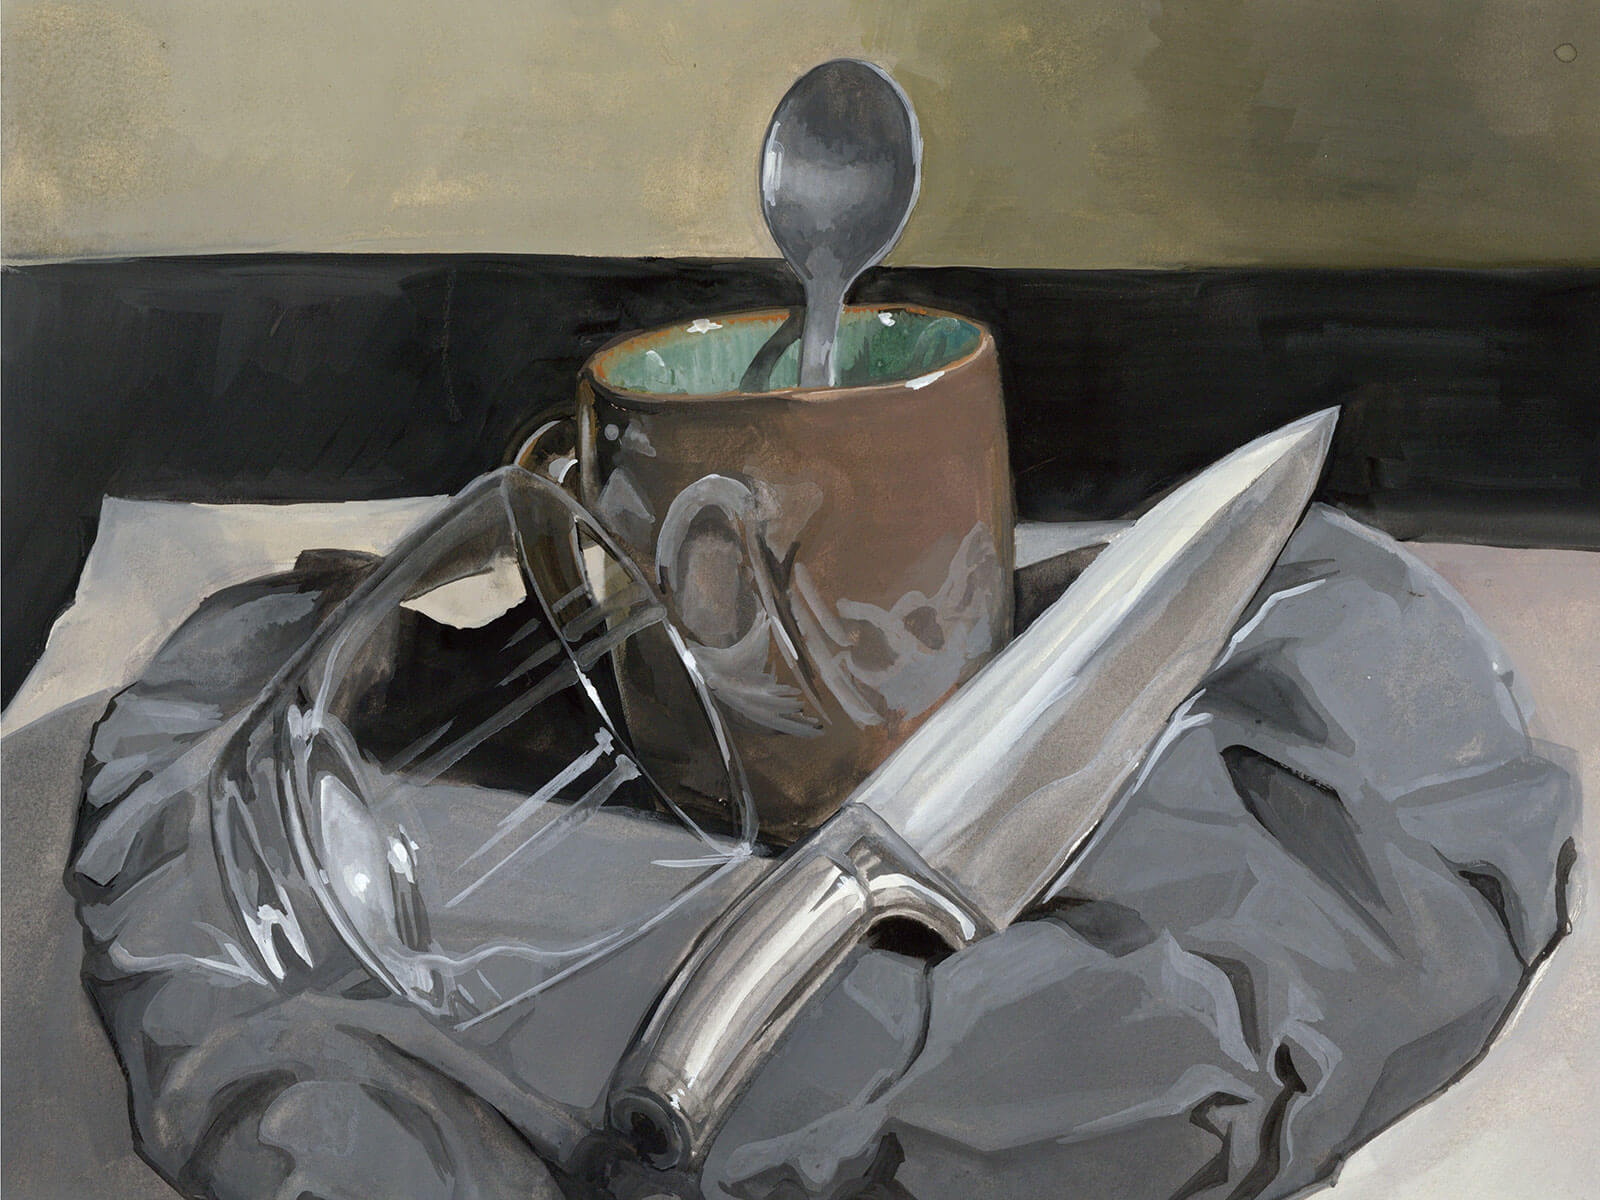 A still-life with mug, glass and kitchen knife resting on a cloth